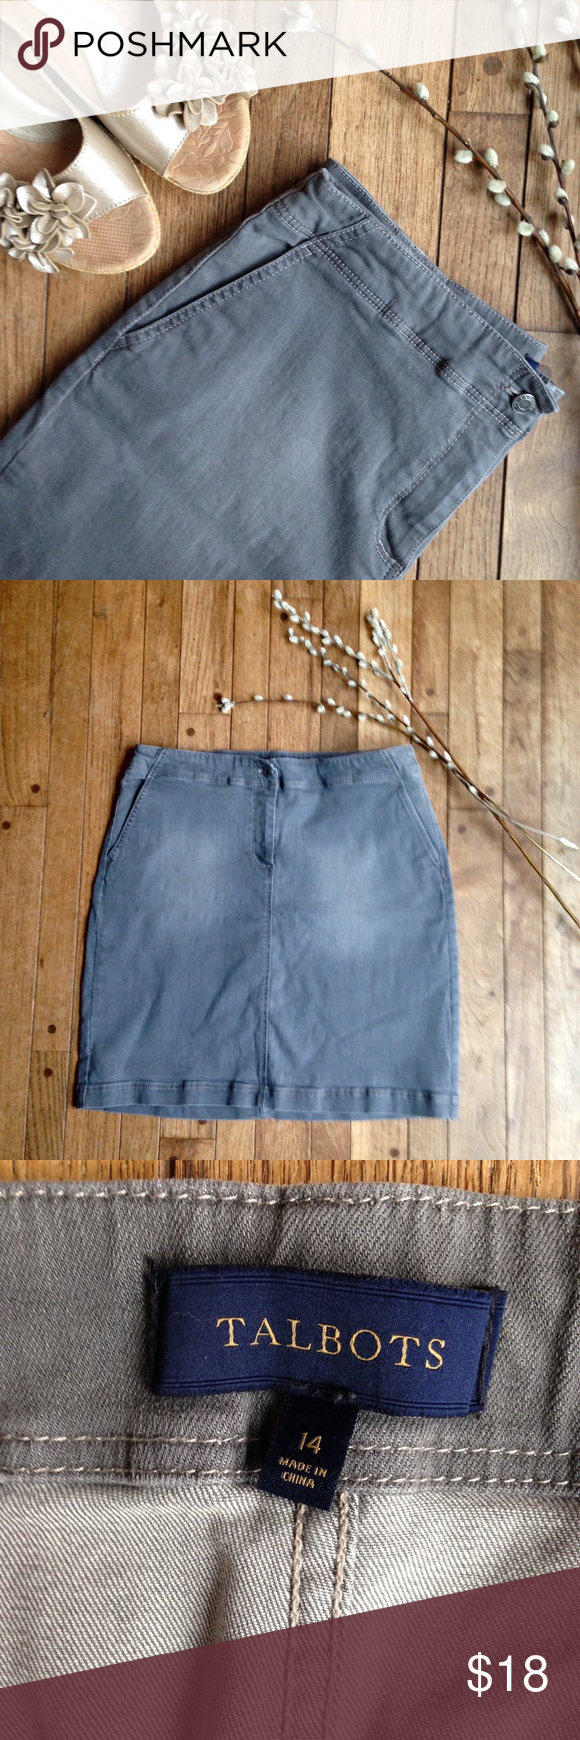 """Talbots gray denim skirt EUC. W-34. L-20"""". Gray denim. 99% cotton 1% spandex. Button and zip in front. Waist stretches slightly.  Two pockets in back. Talbots Skirts Midi"""